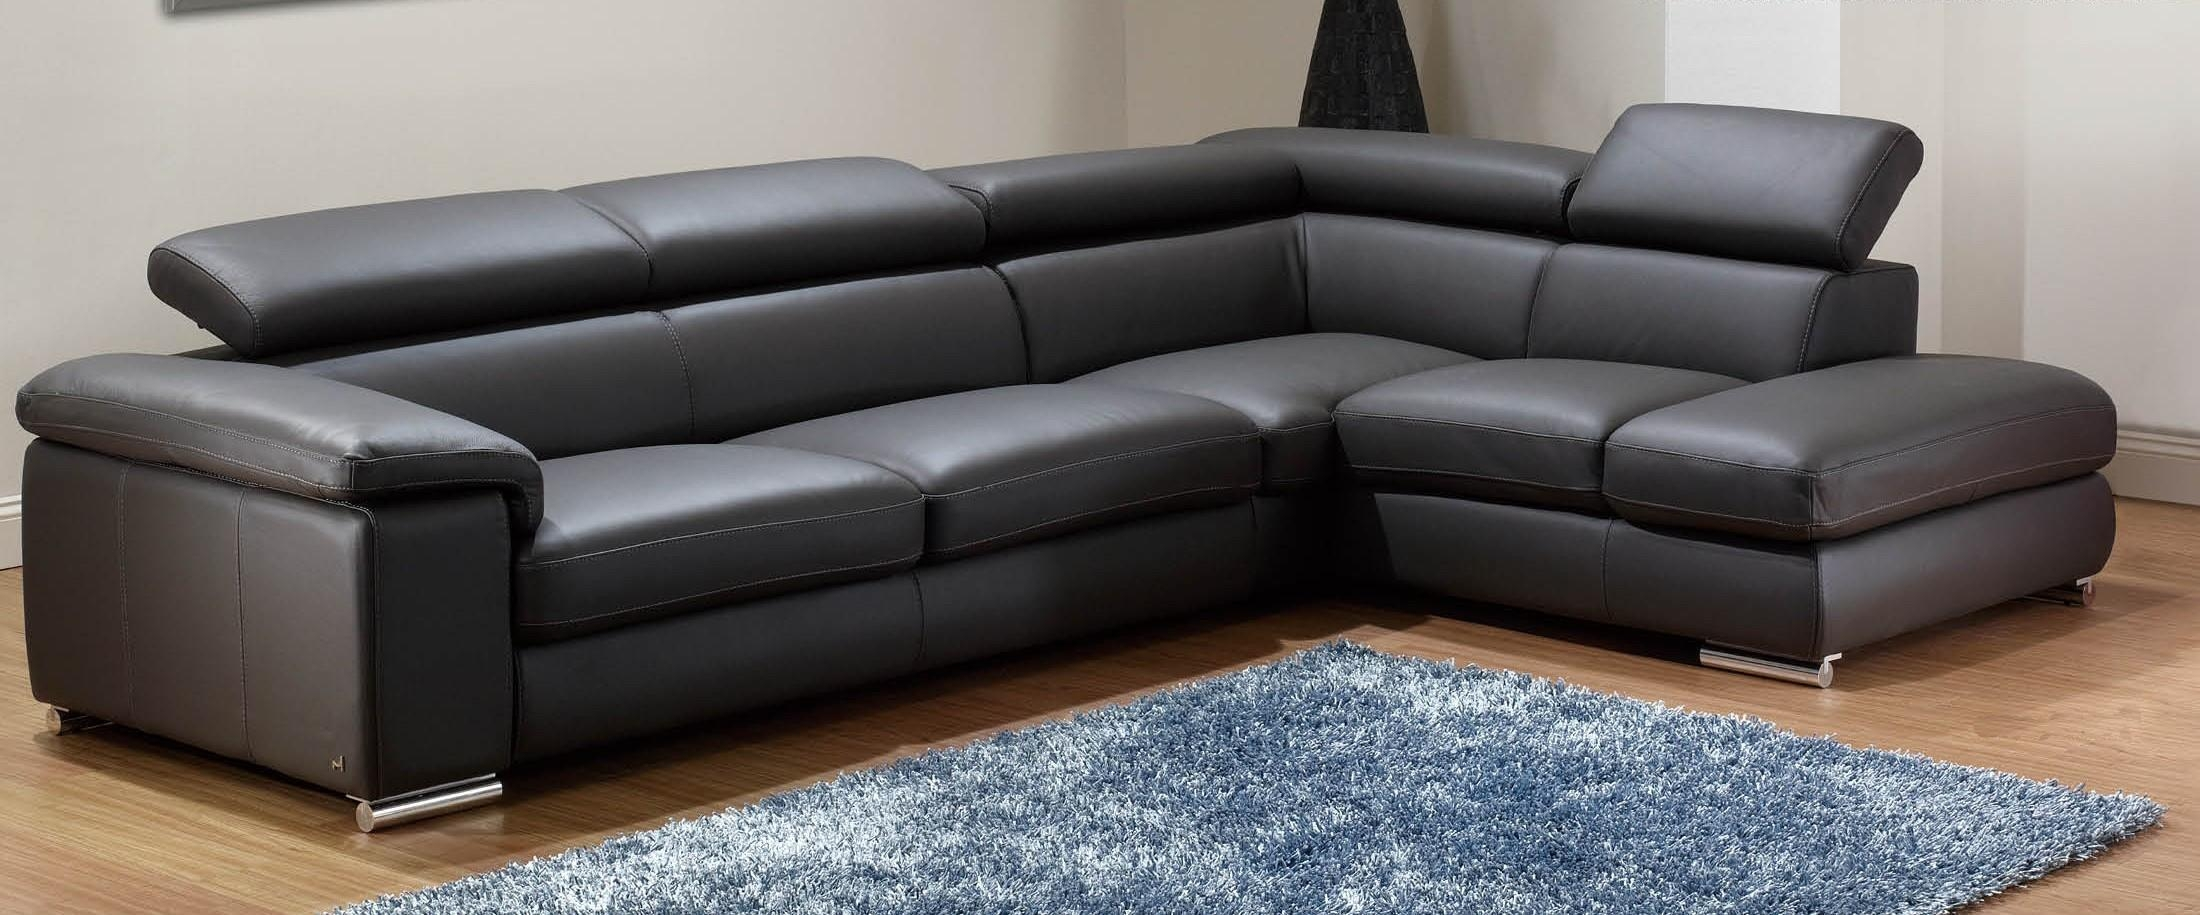 21 collection of black leather sectional sleeper sofas sofa ideas. Black Bedroom Furniture Sets. Home Design Ideas